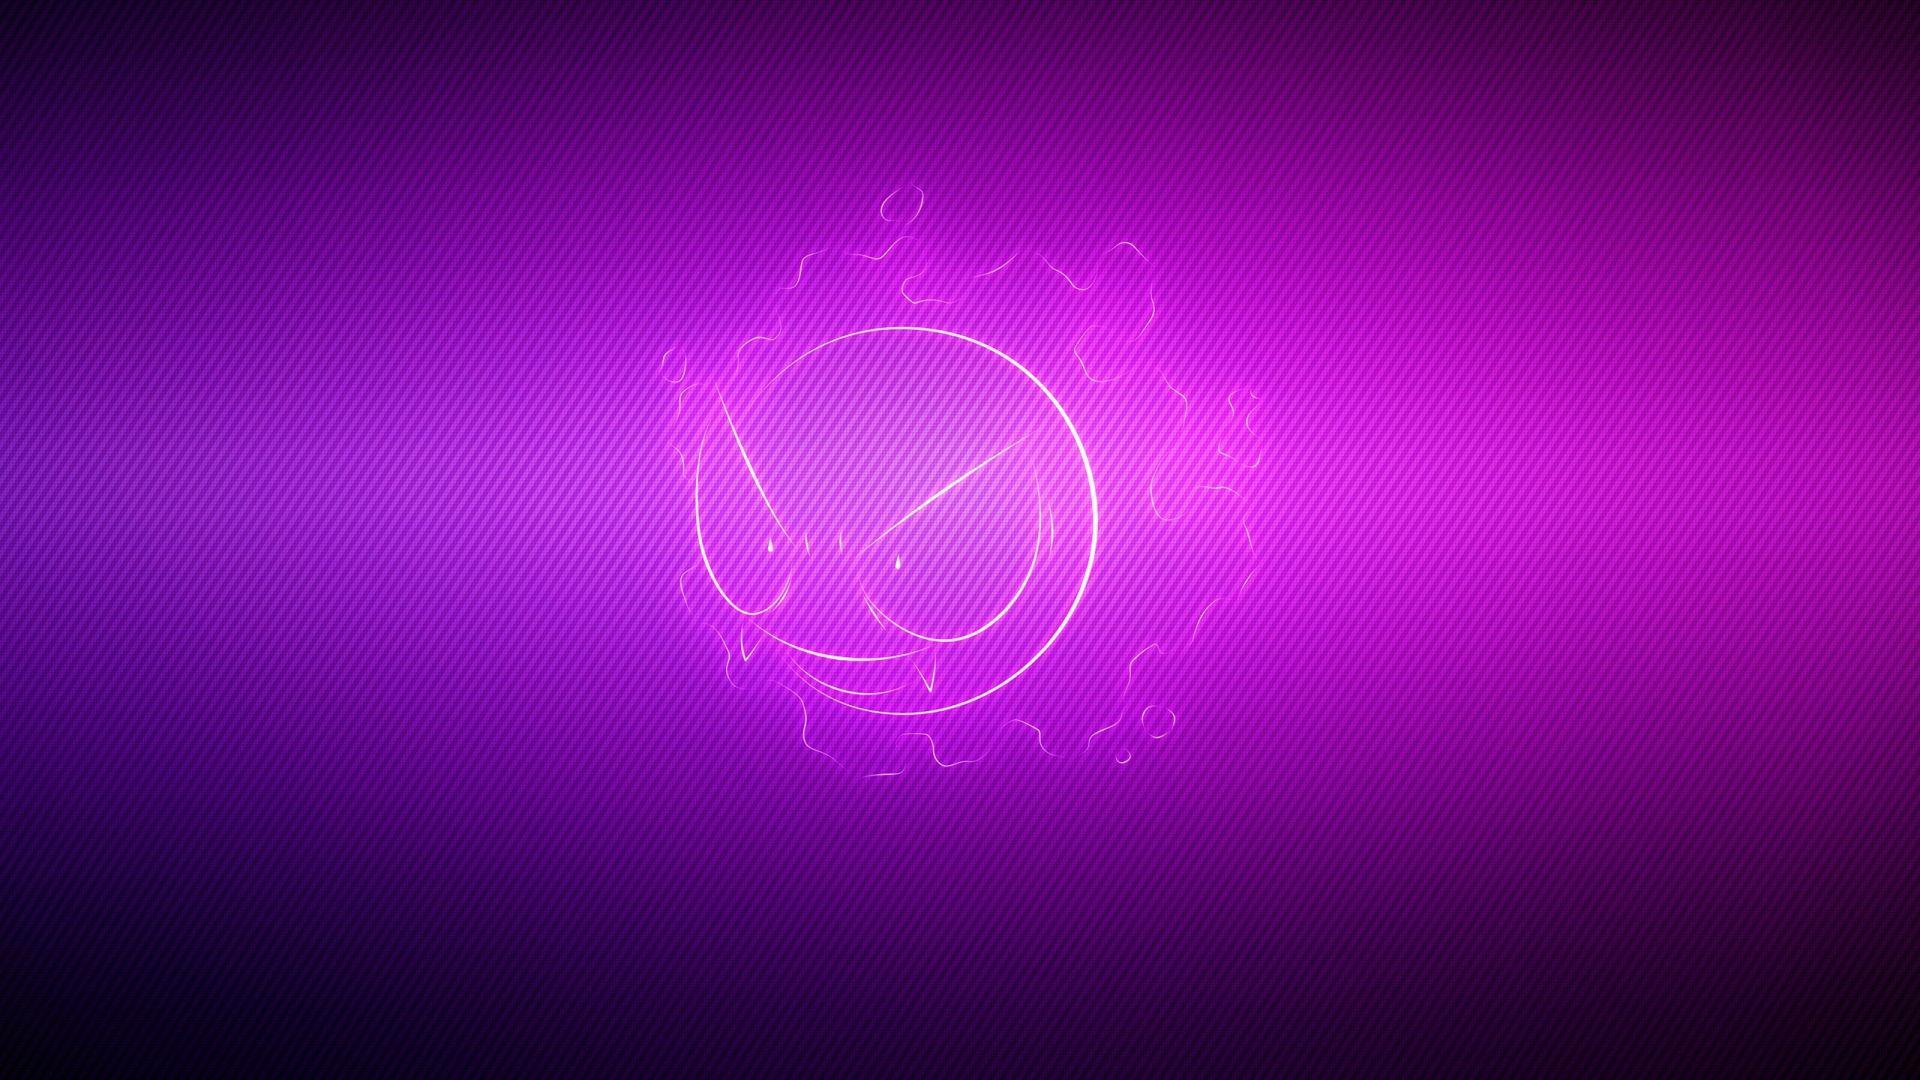 Gastly Pokemon Purple Light HD Wallpaper - Free HD wallpapers ...